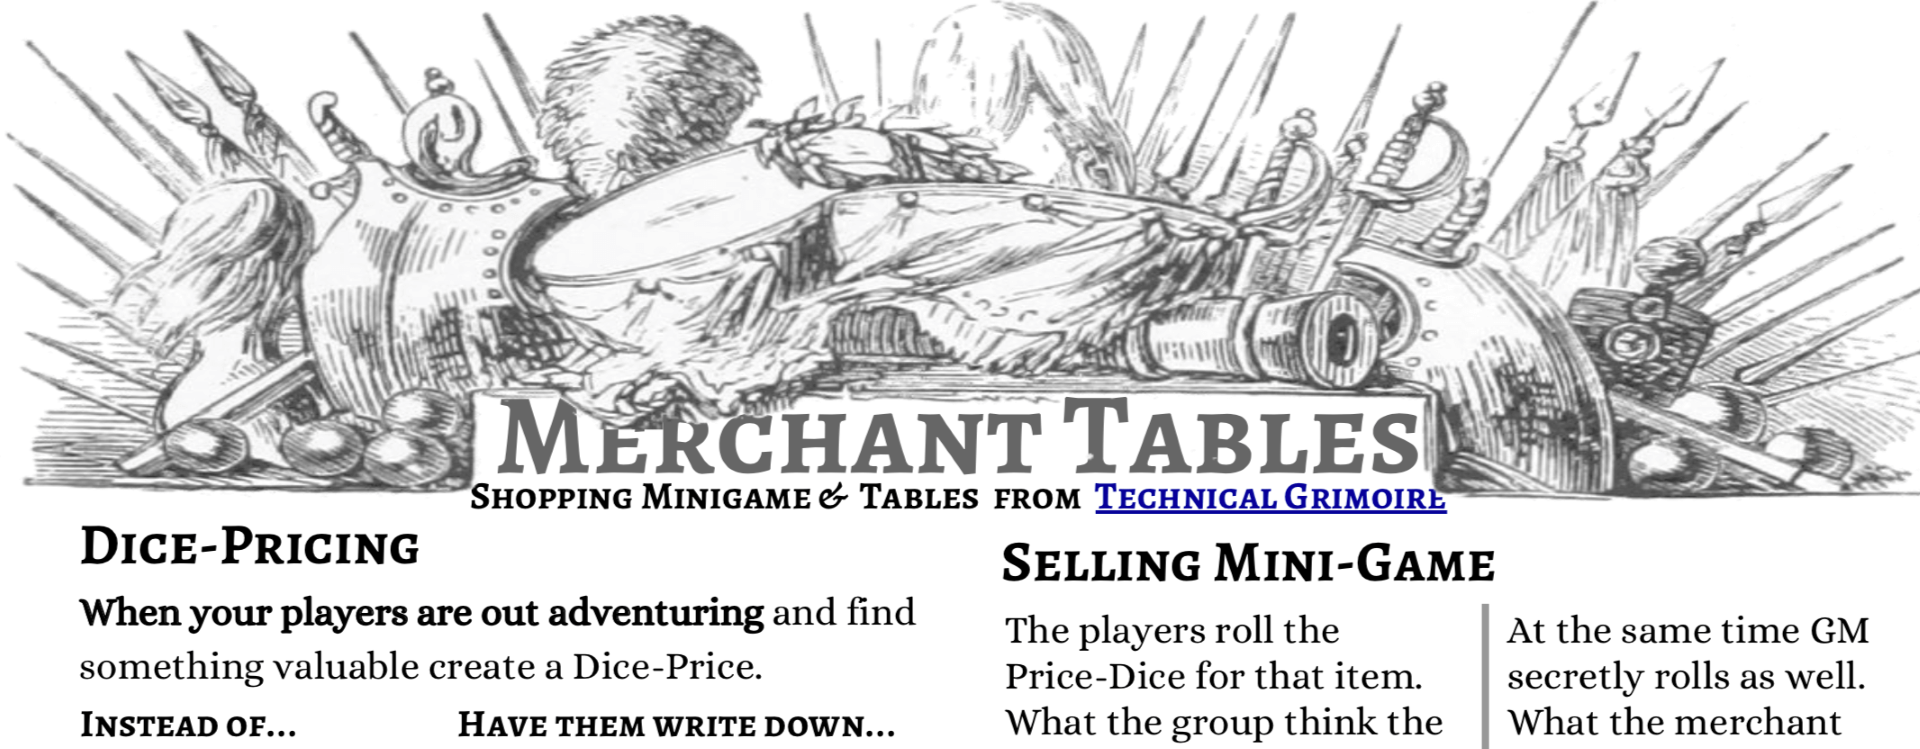 Merchant Tables